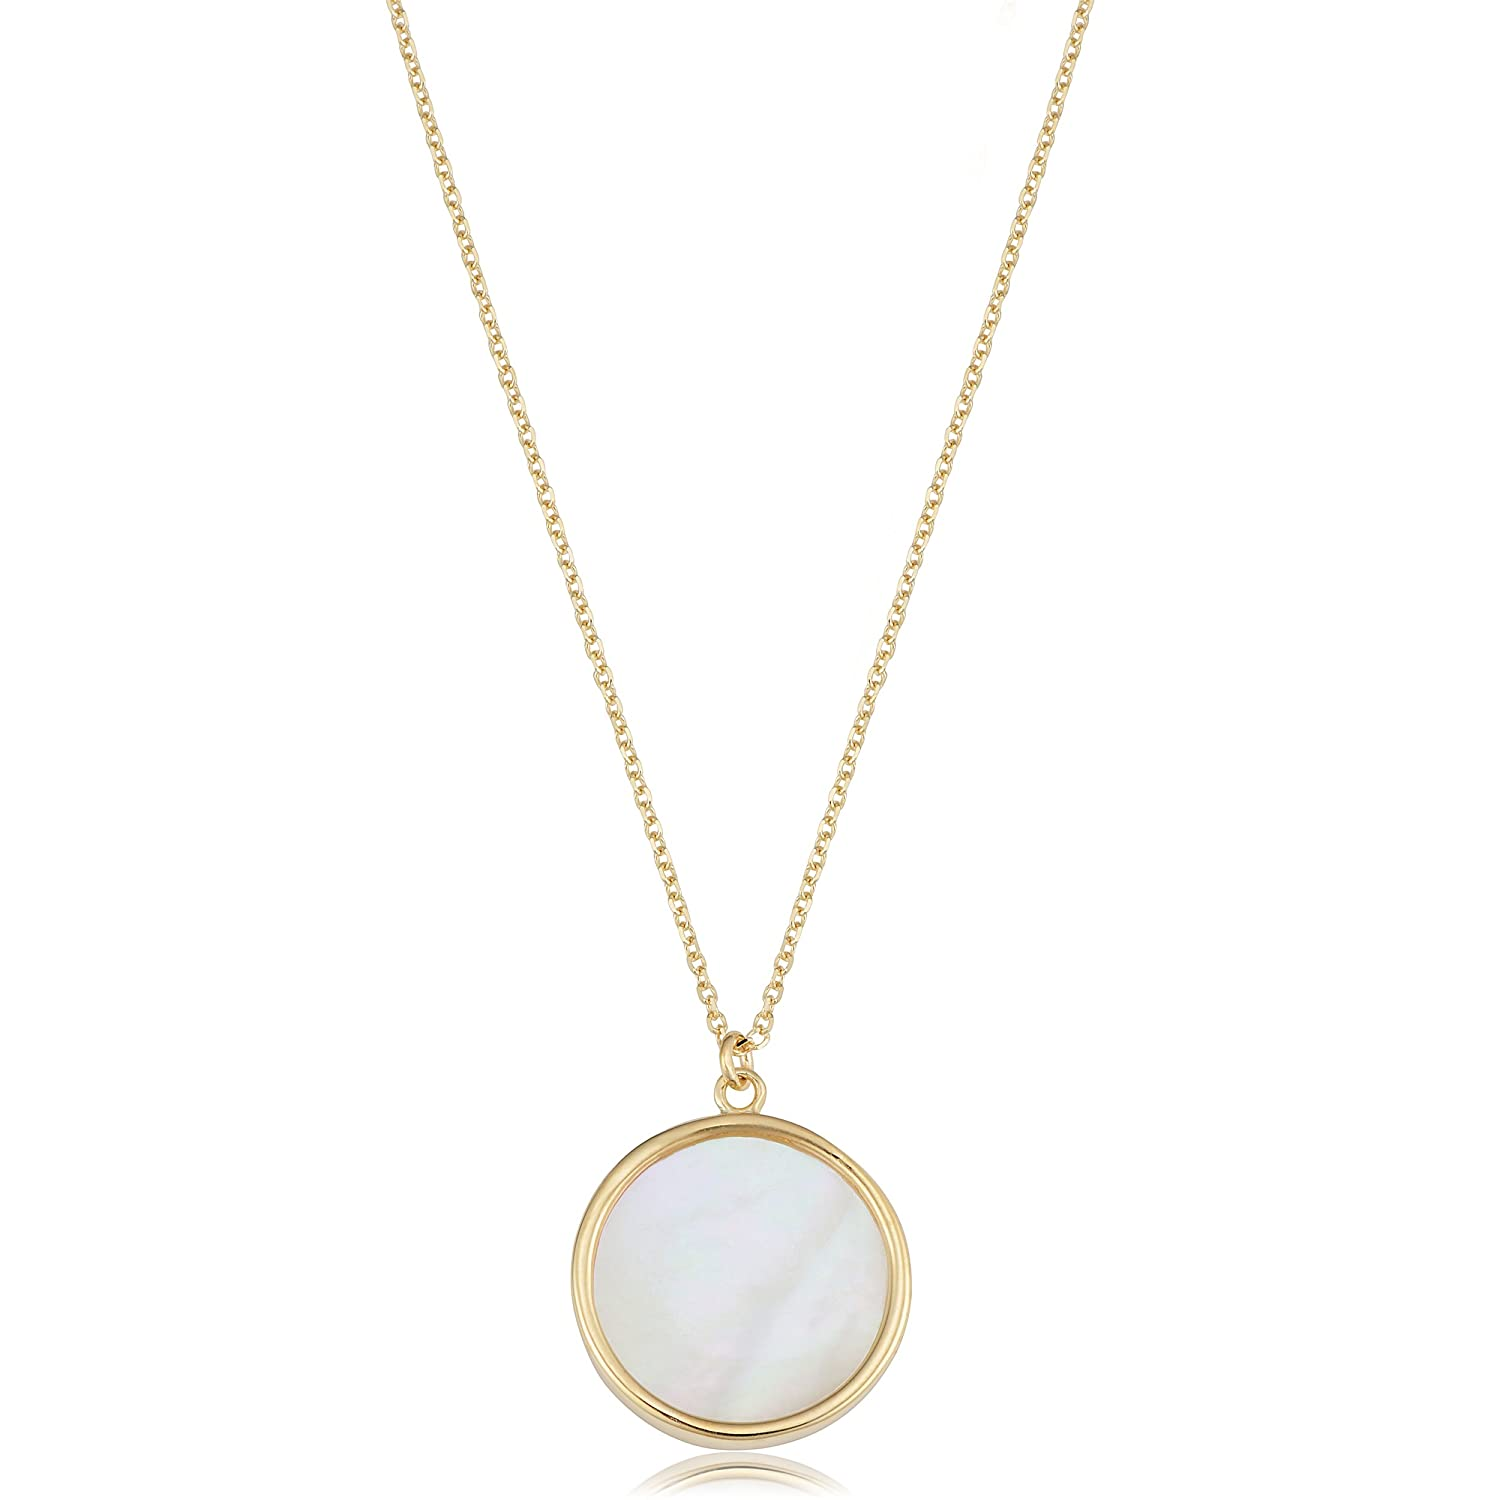 d1a46281994ac Amazon.com: Kooljewelry 14k Yellow Gold Mother of Pearl Necklace (18 ...